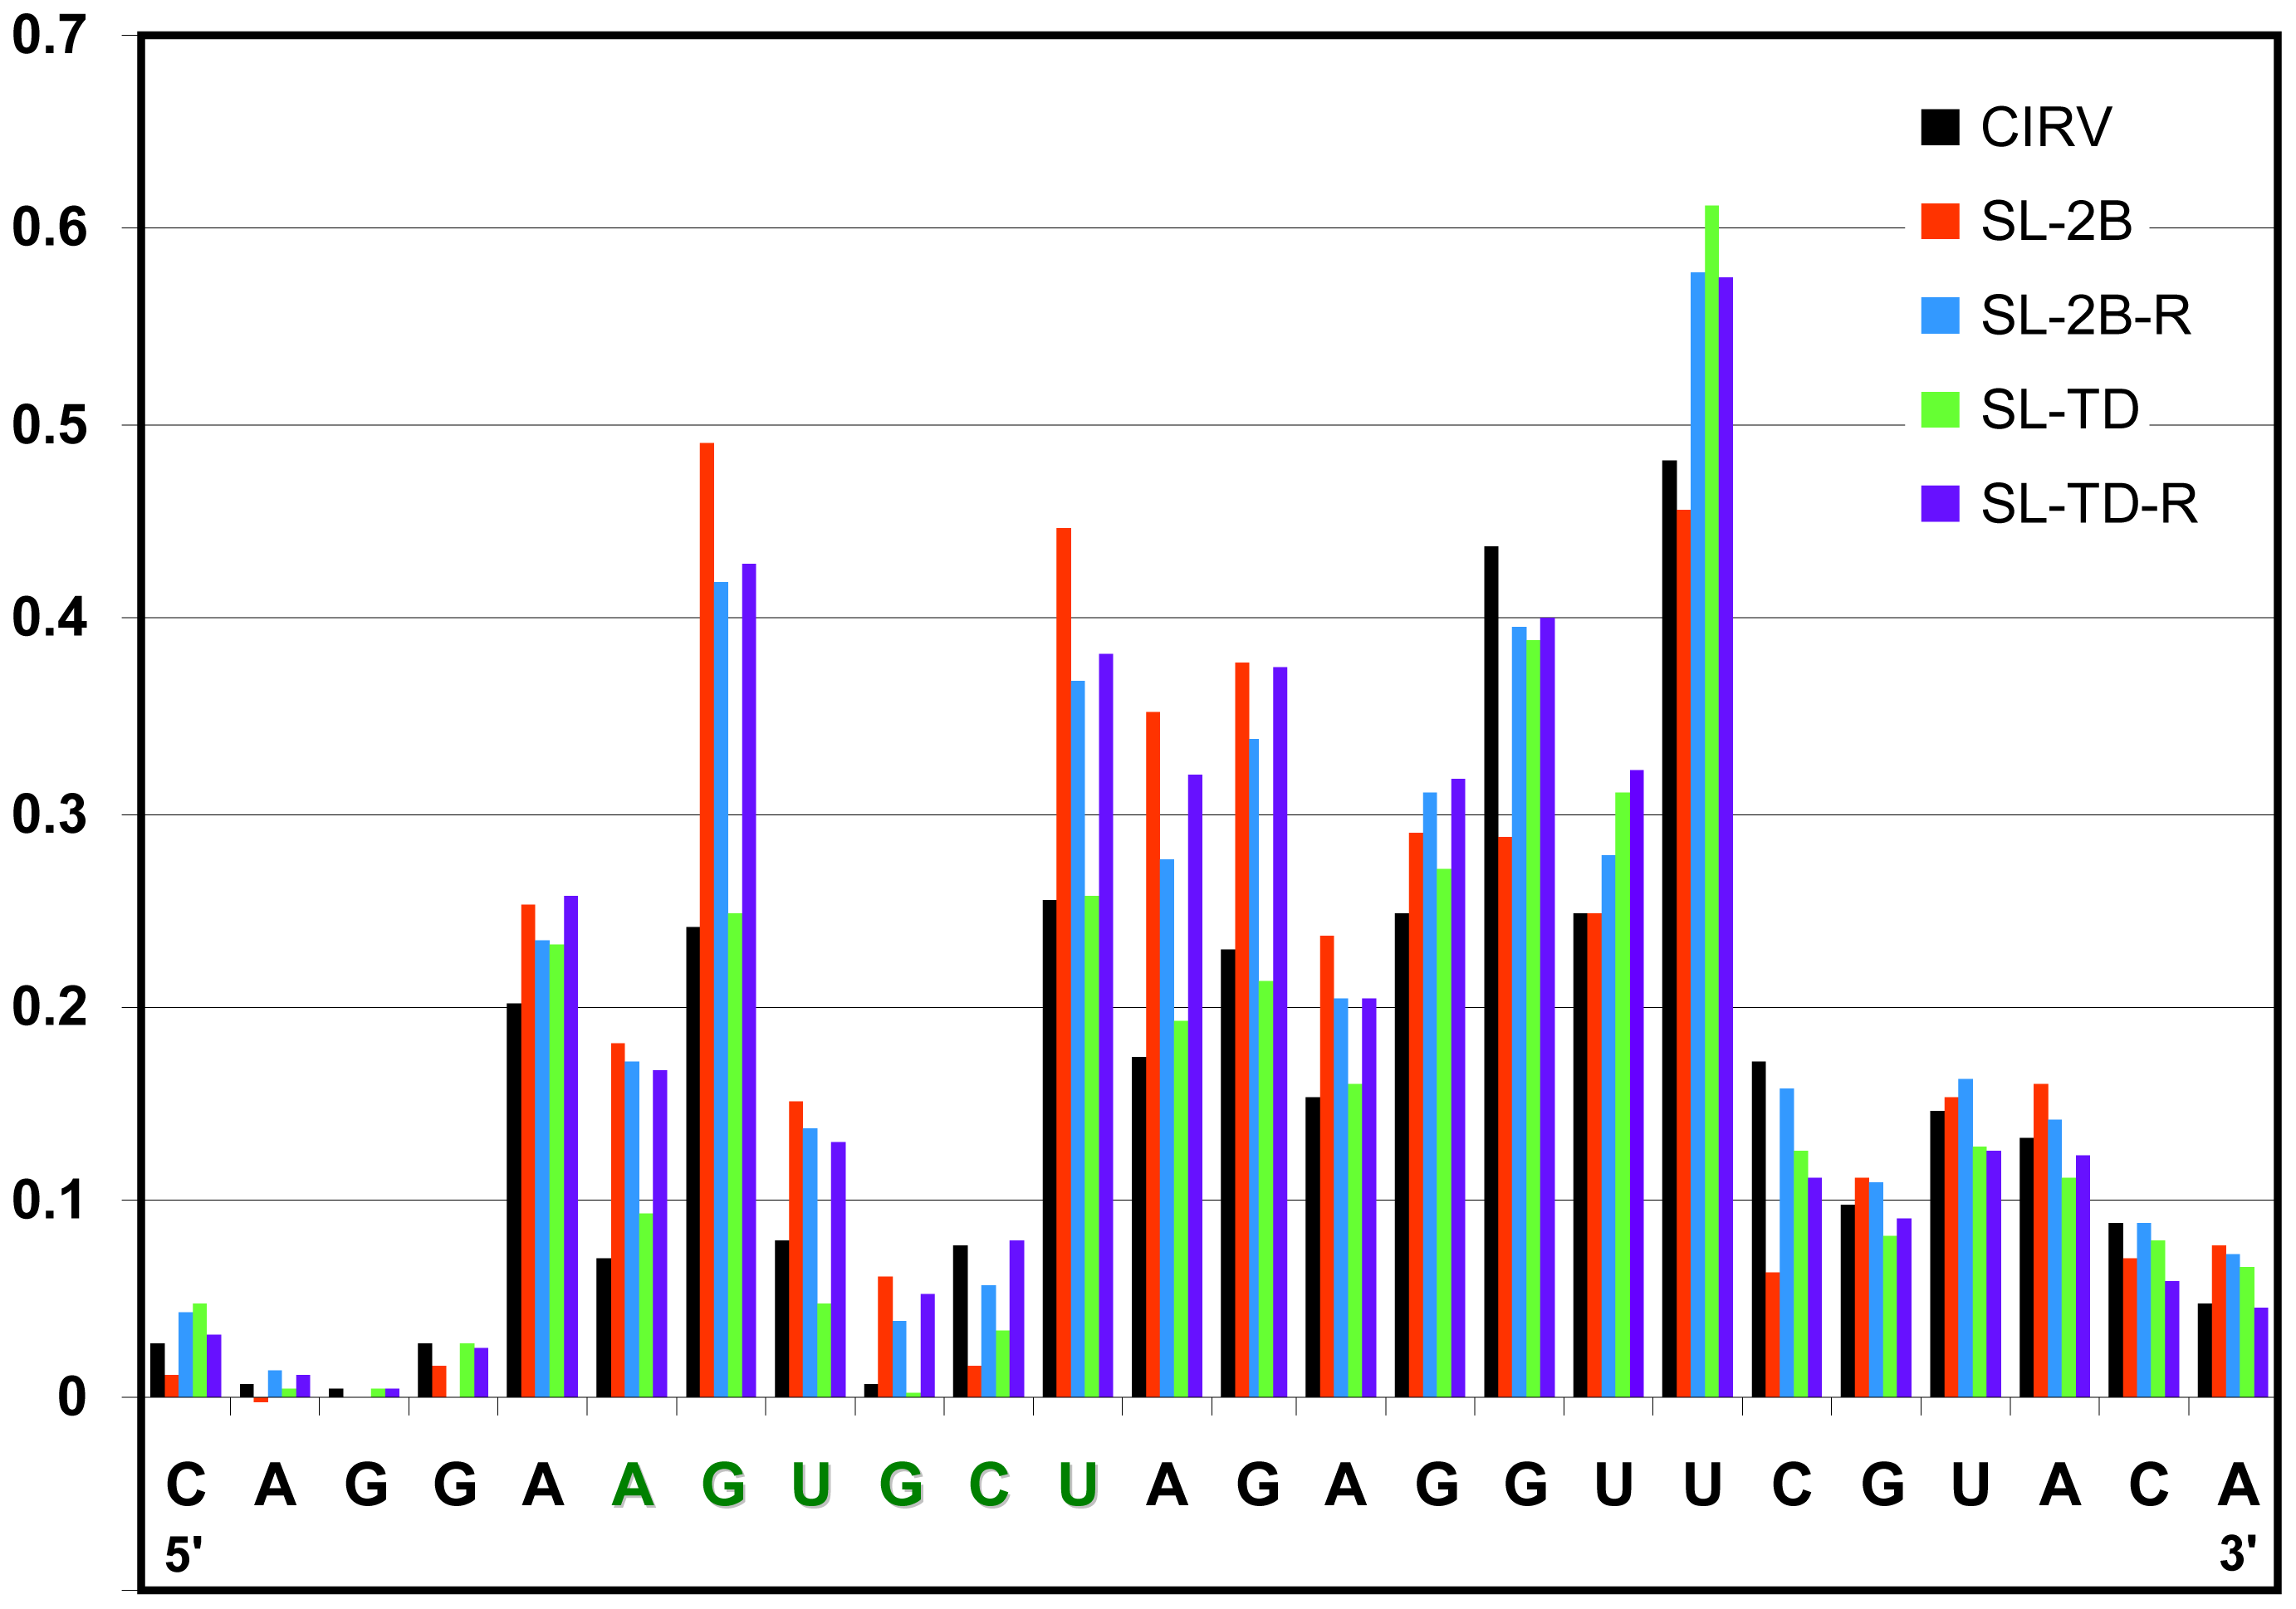 SHAPE analysis of the PRTE in viral genomes containing substitutions in RIV.